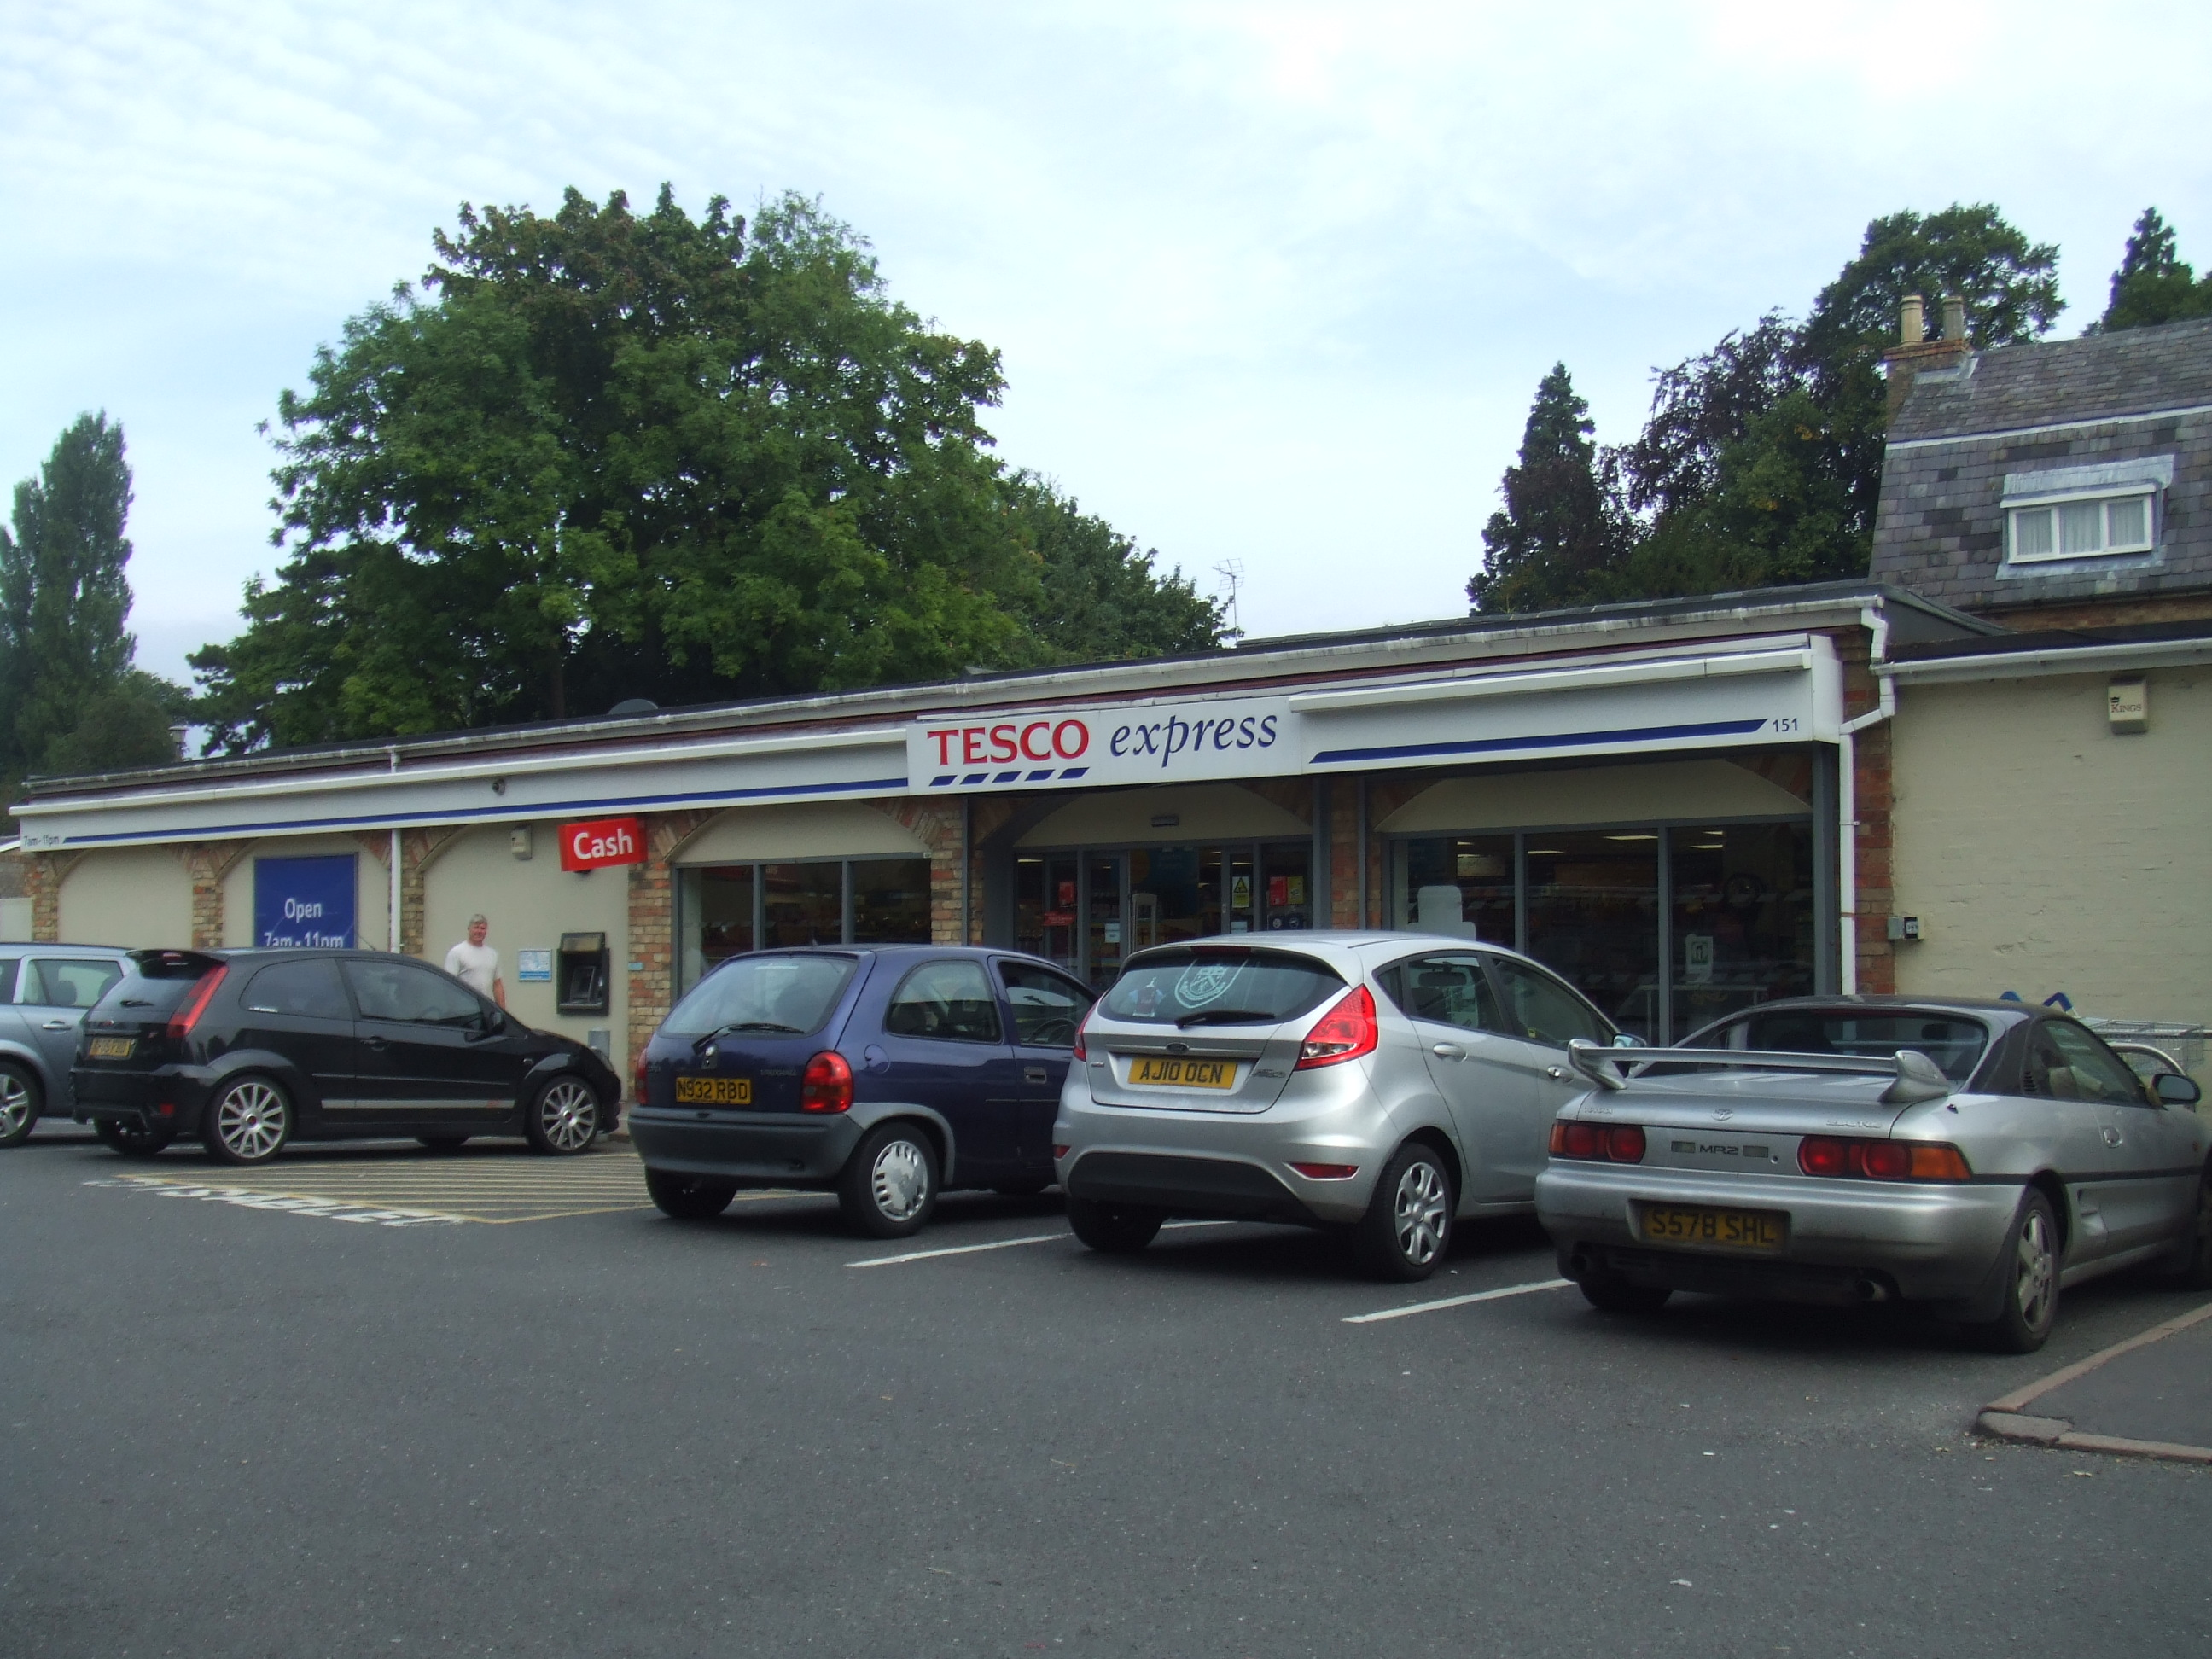 Tesco Express Stores In Eaton Socon Opposite The Church In